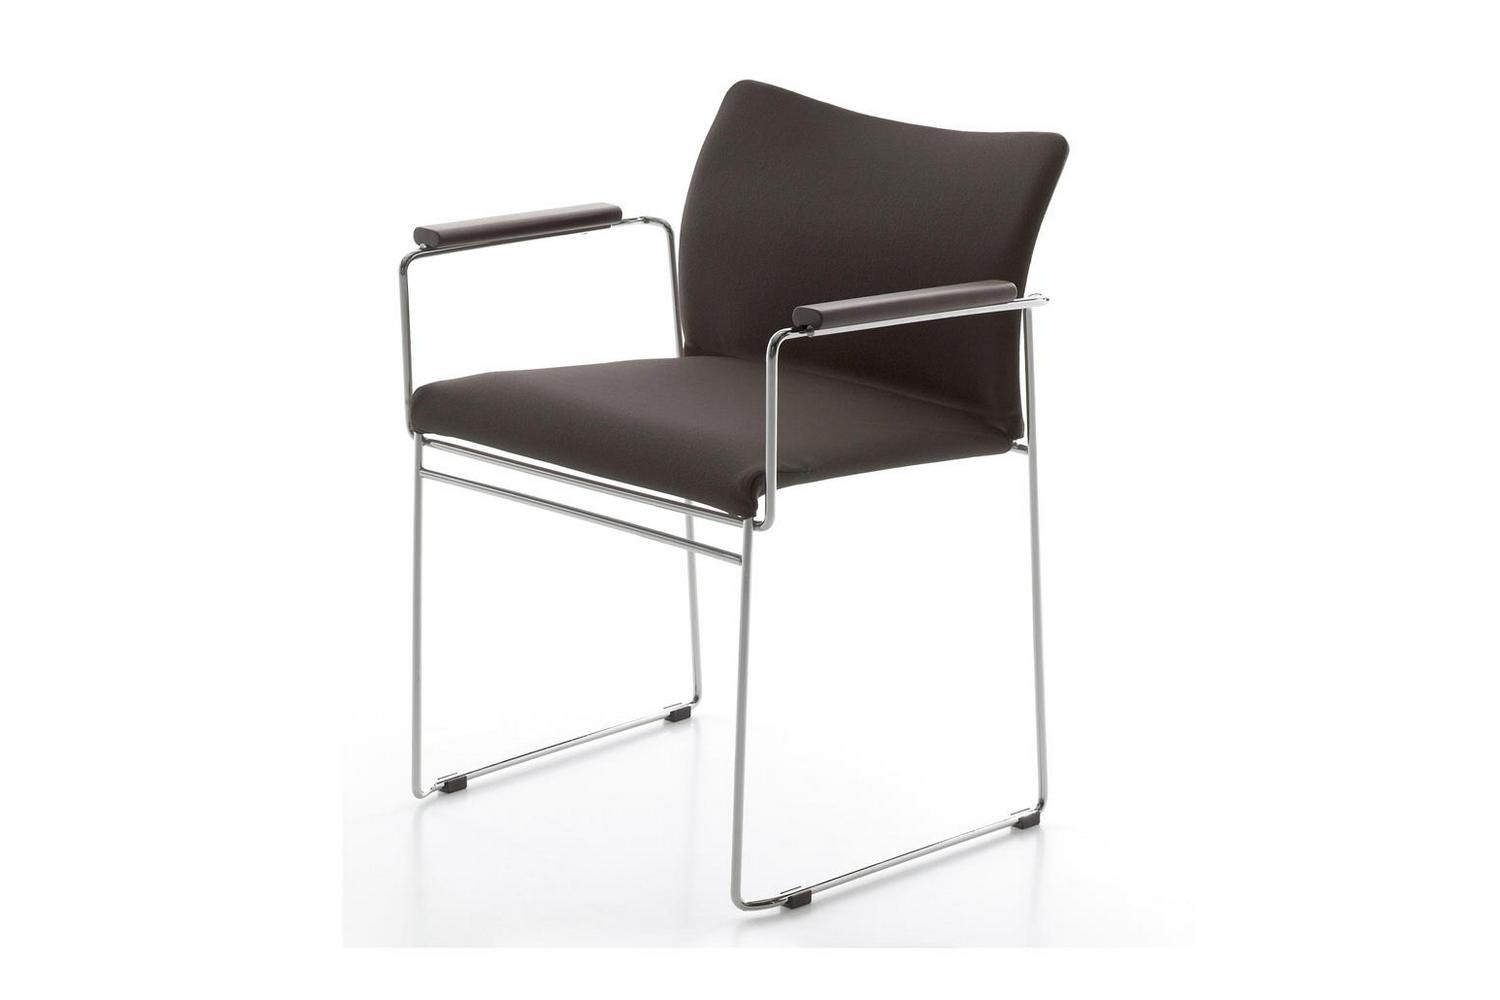 W56 Jano LG Chair by Kazuhide Takahama for Cassina